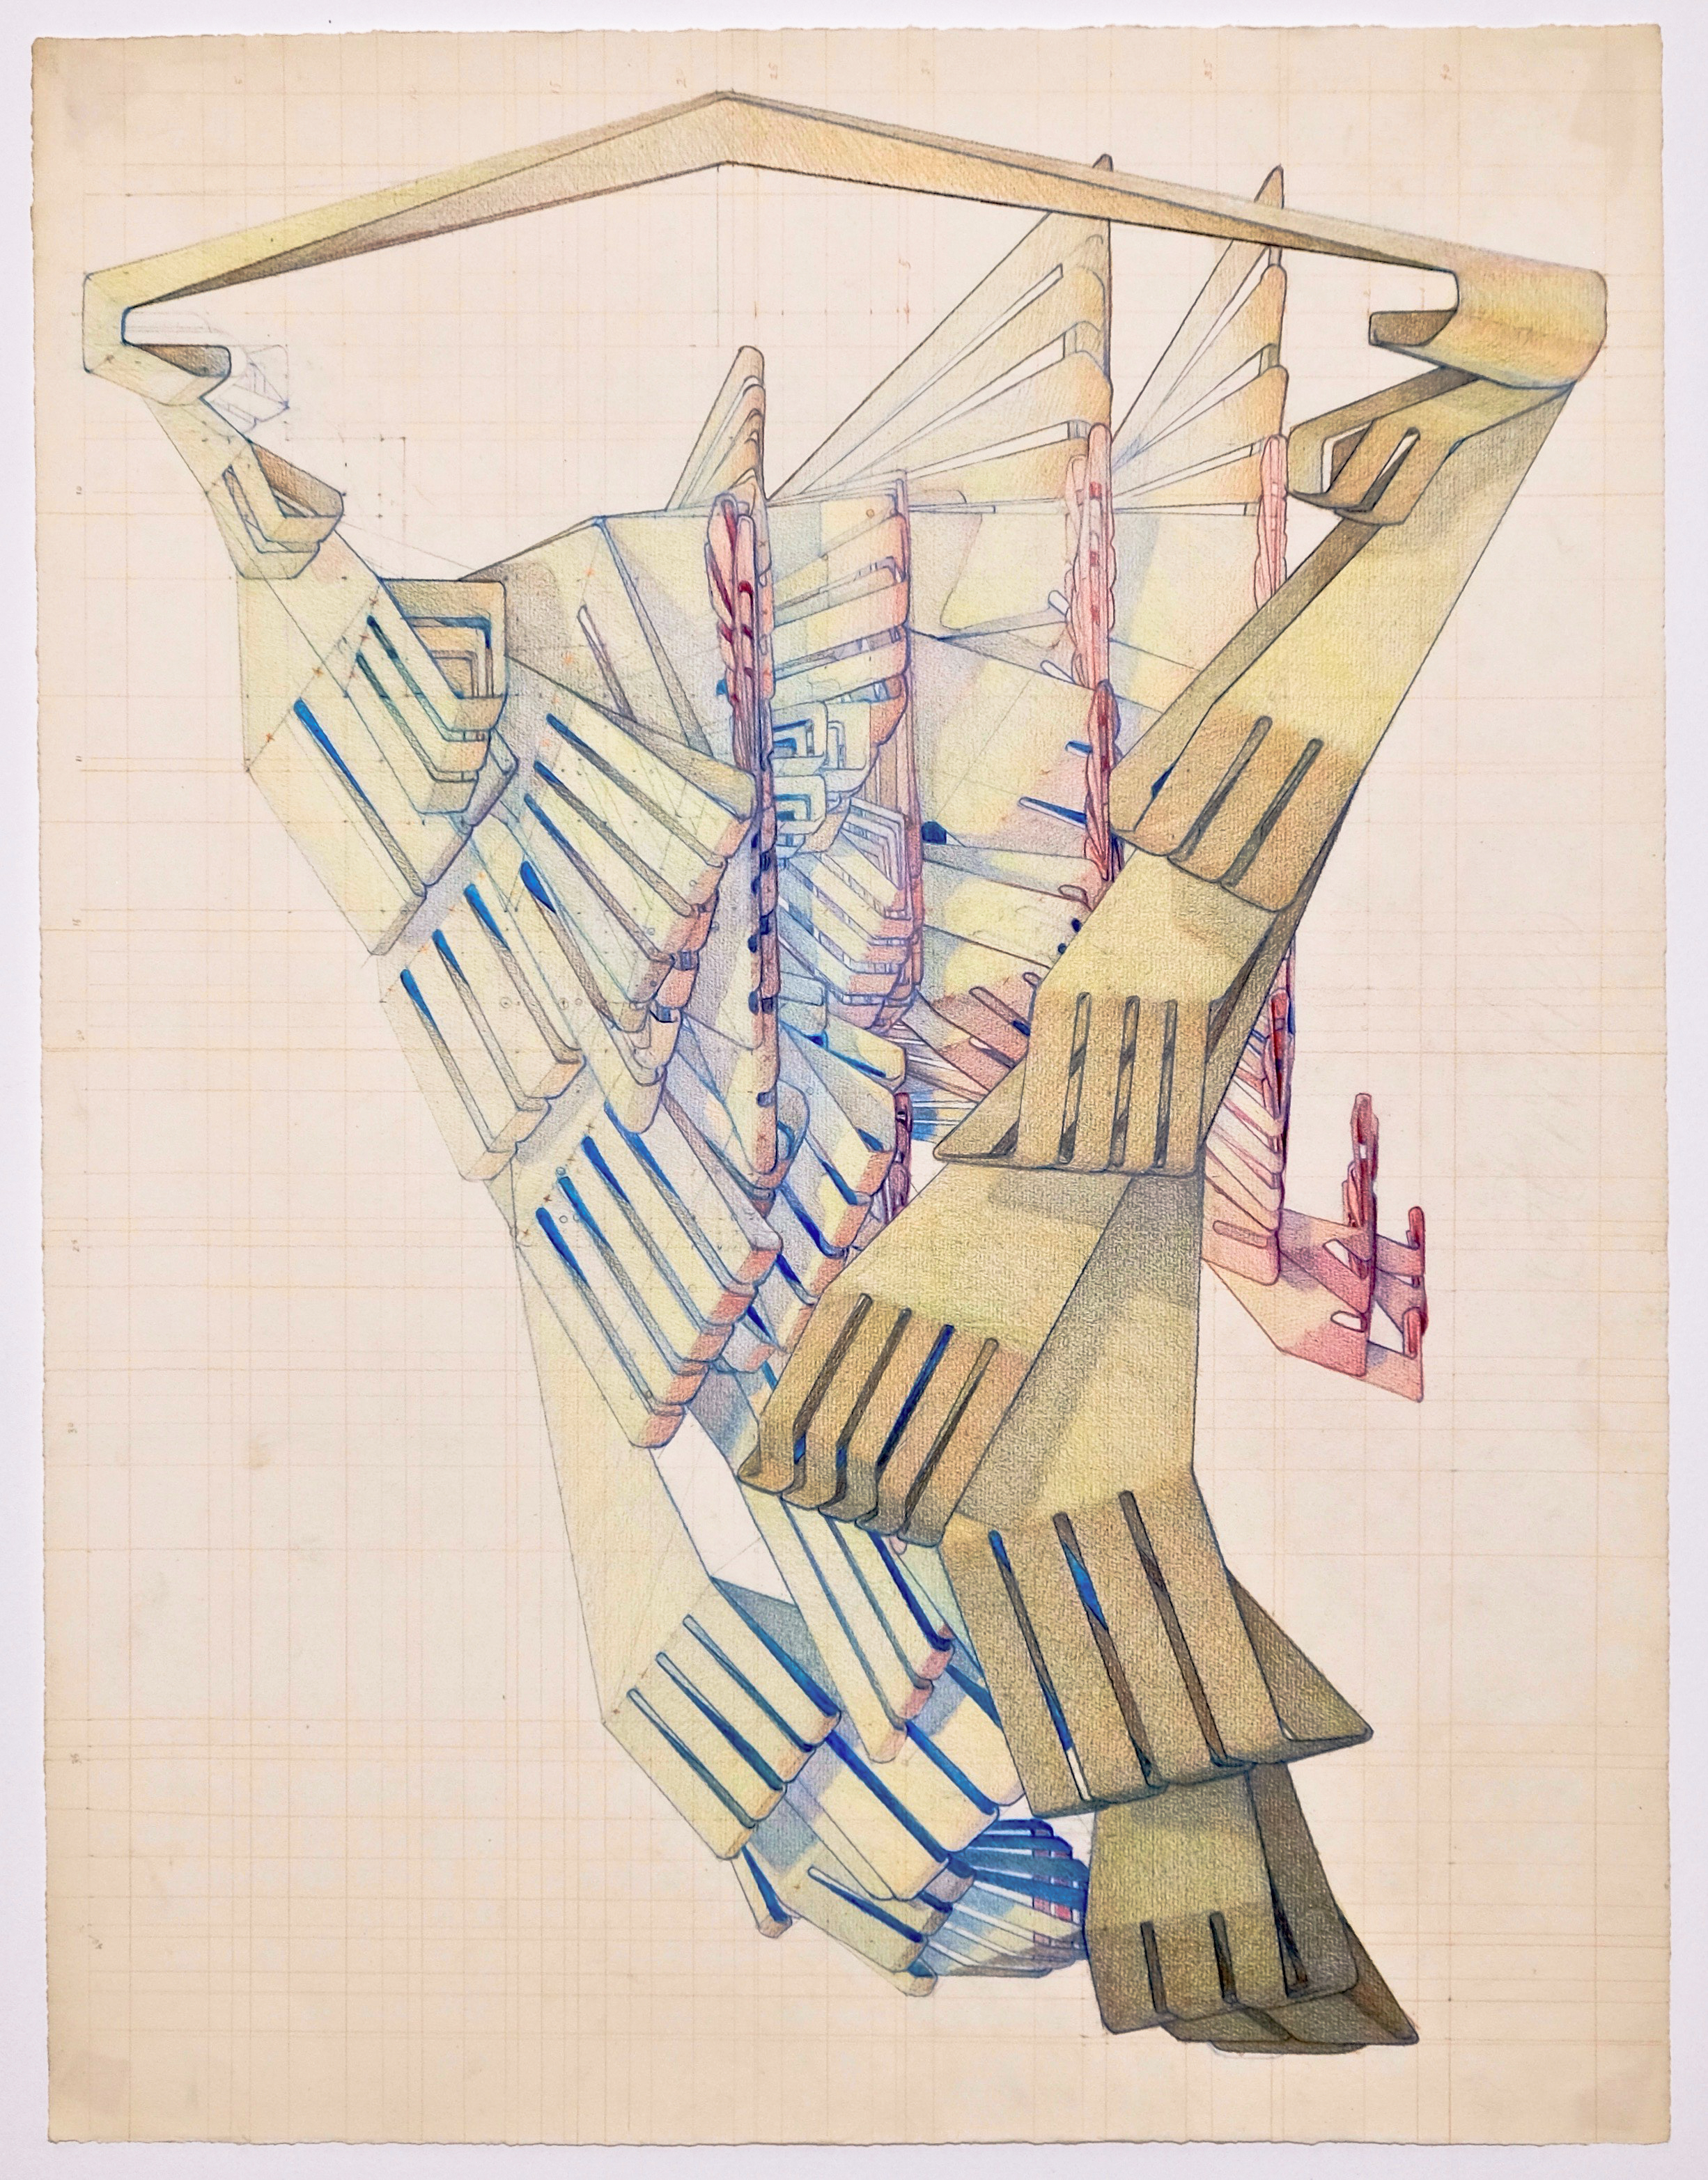 'Research Drawing 3', colored pencil on paper, 2018-4.jpg